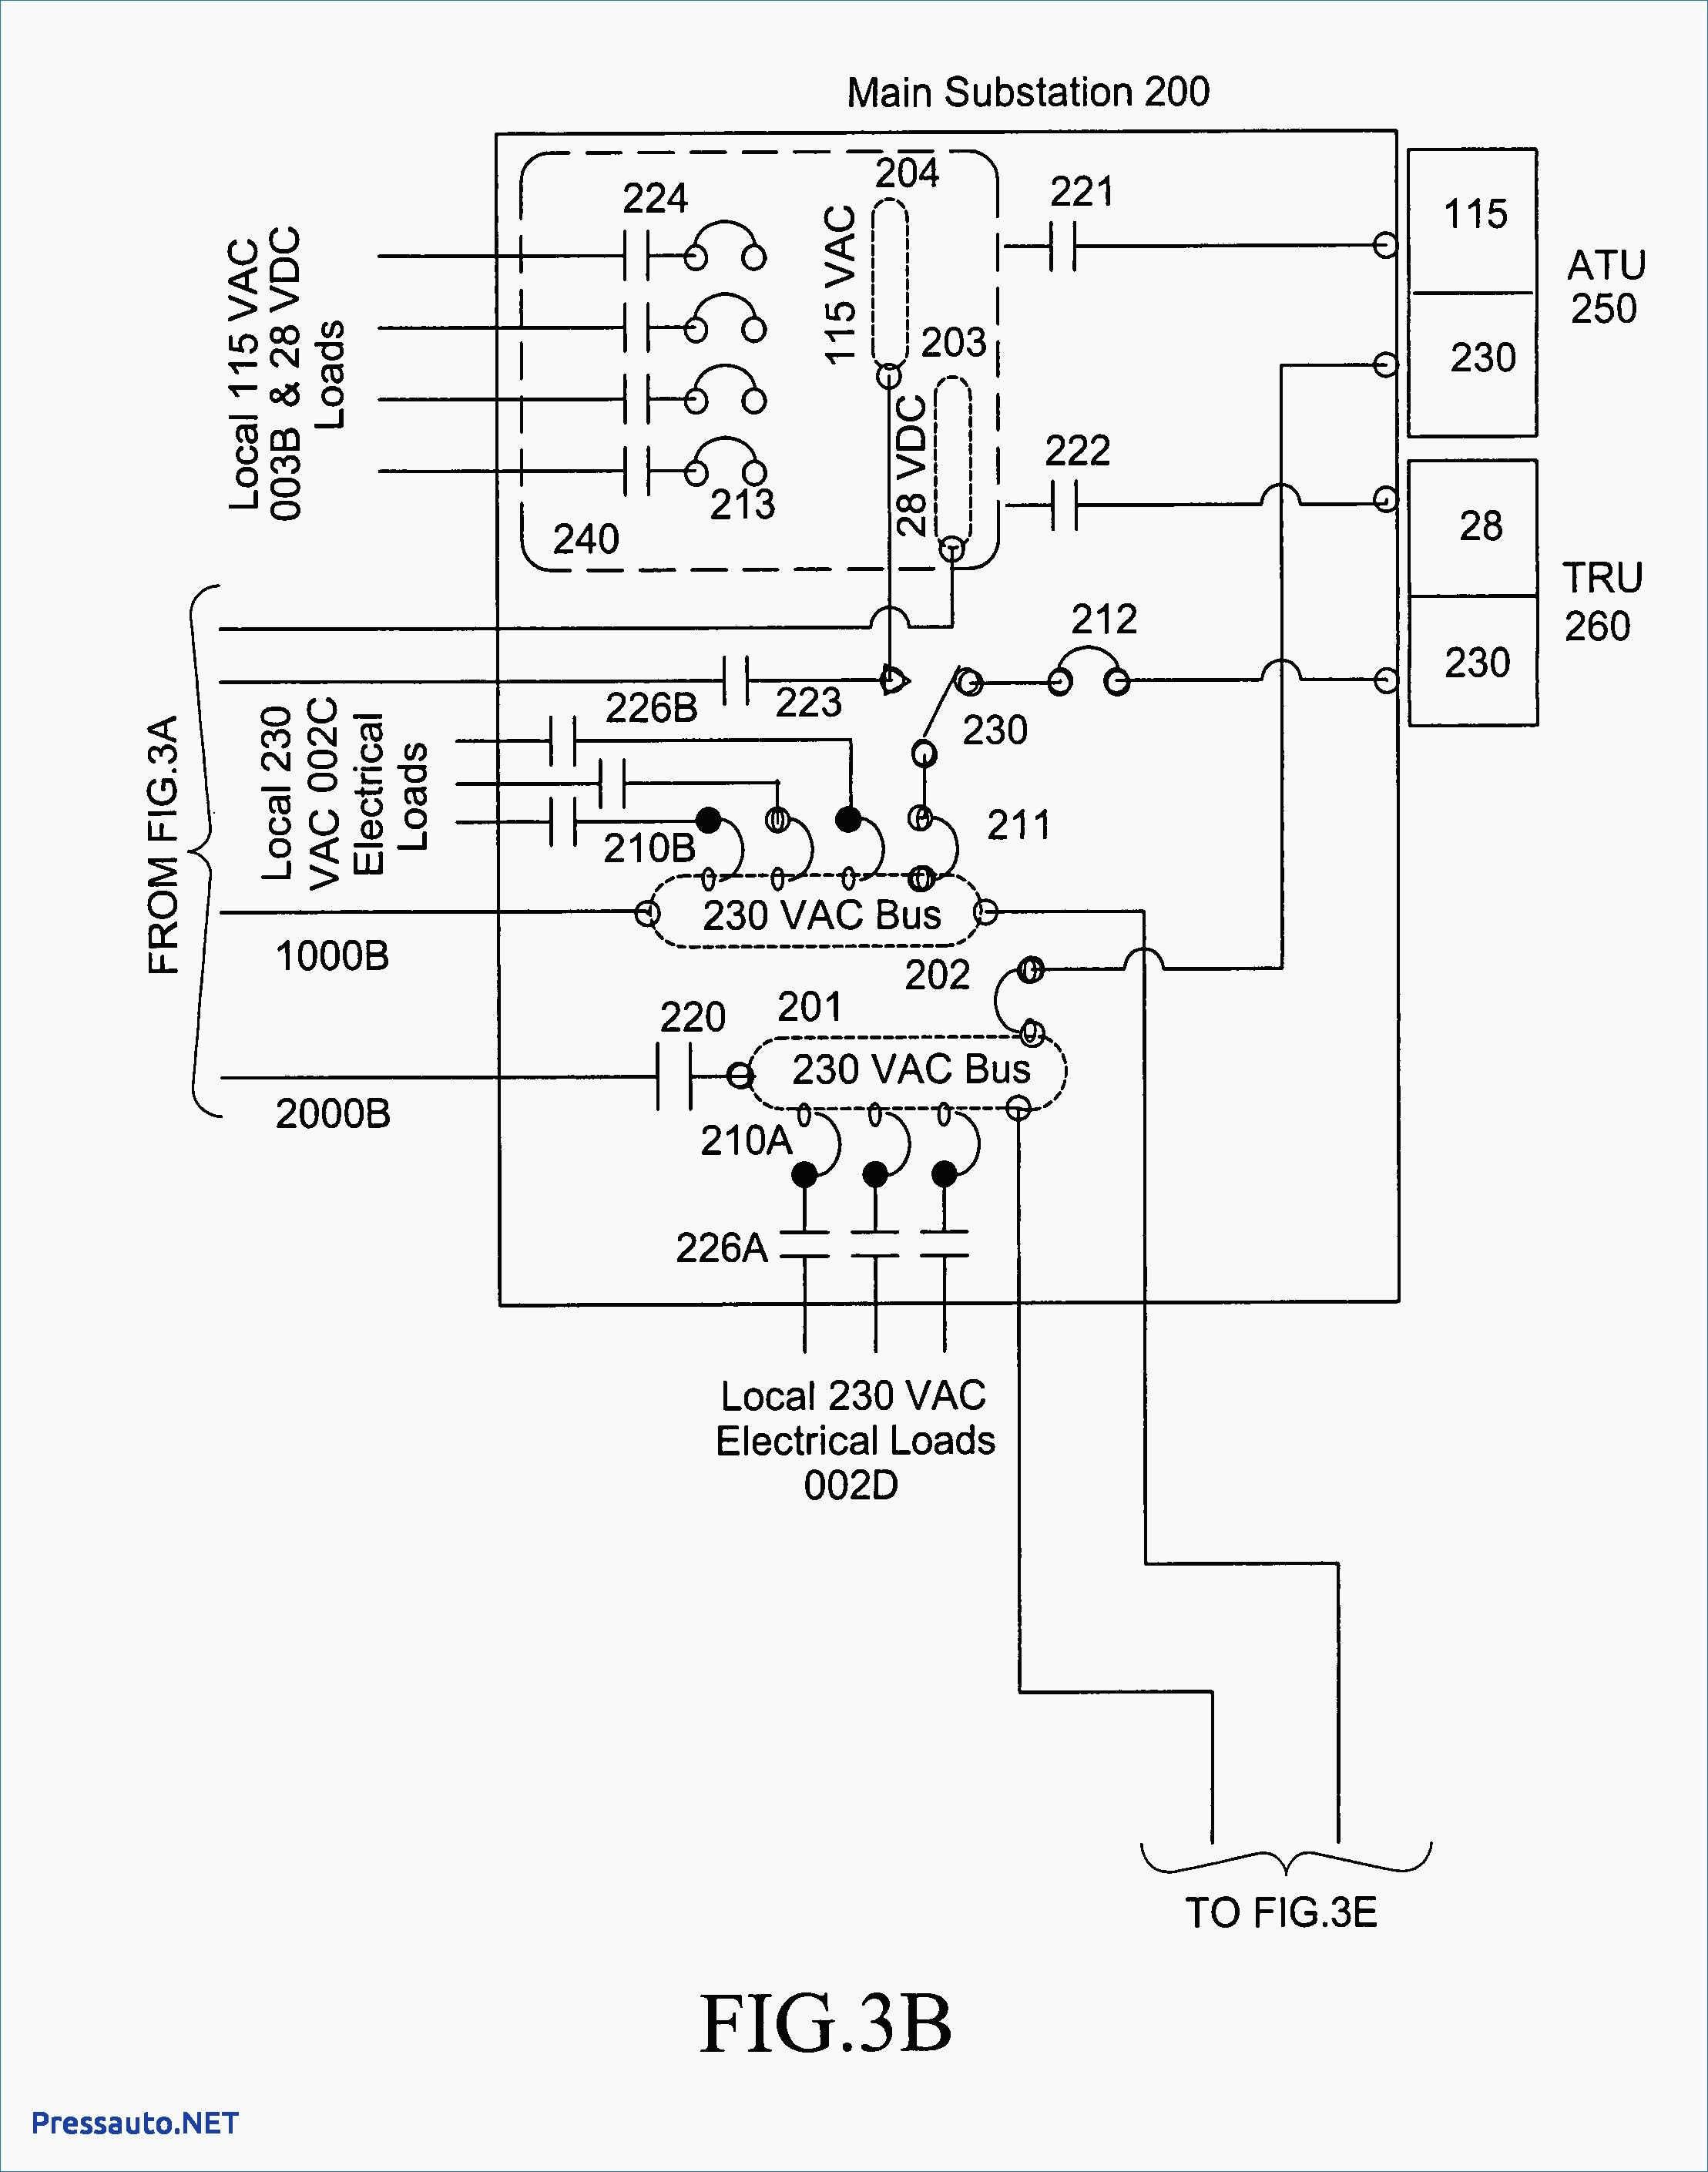 Aprilaire 760 Wiring Diagram Dorable Aprilaire 110 Wiring Diagram Gallery Electrical Circuit Of Aprilaire 760 Wiring Diagram